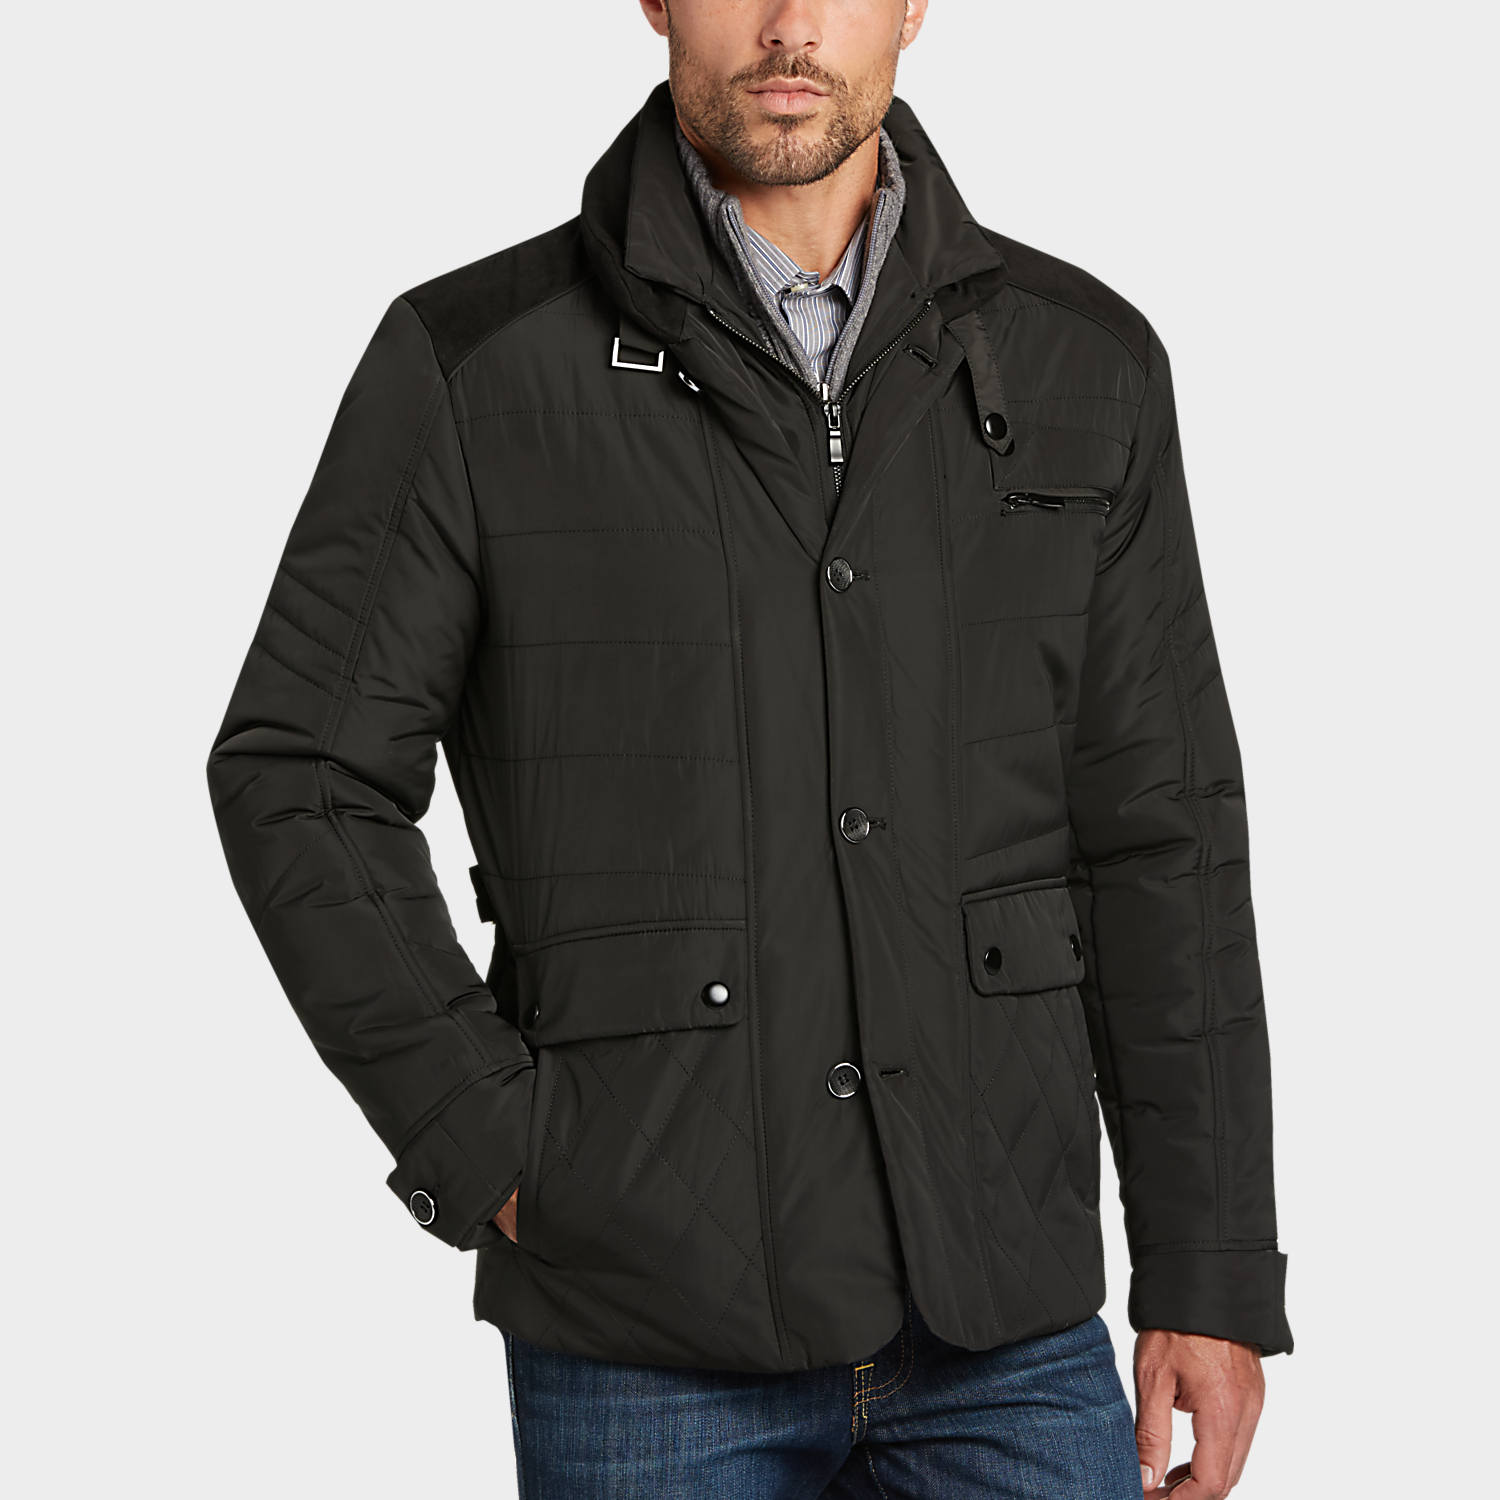 Men's Casual Jackets & Outerwear | Men's Wearhouse